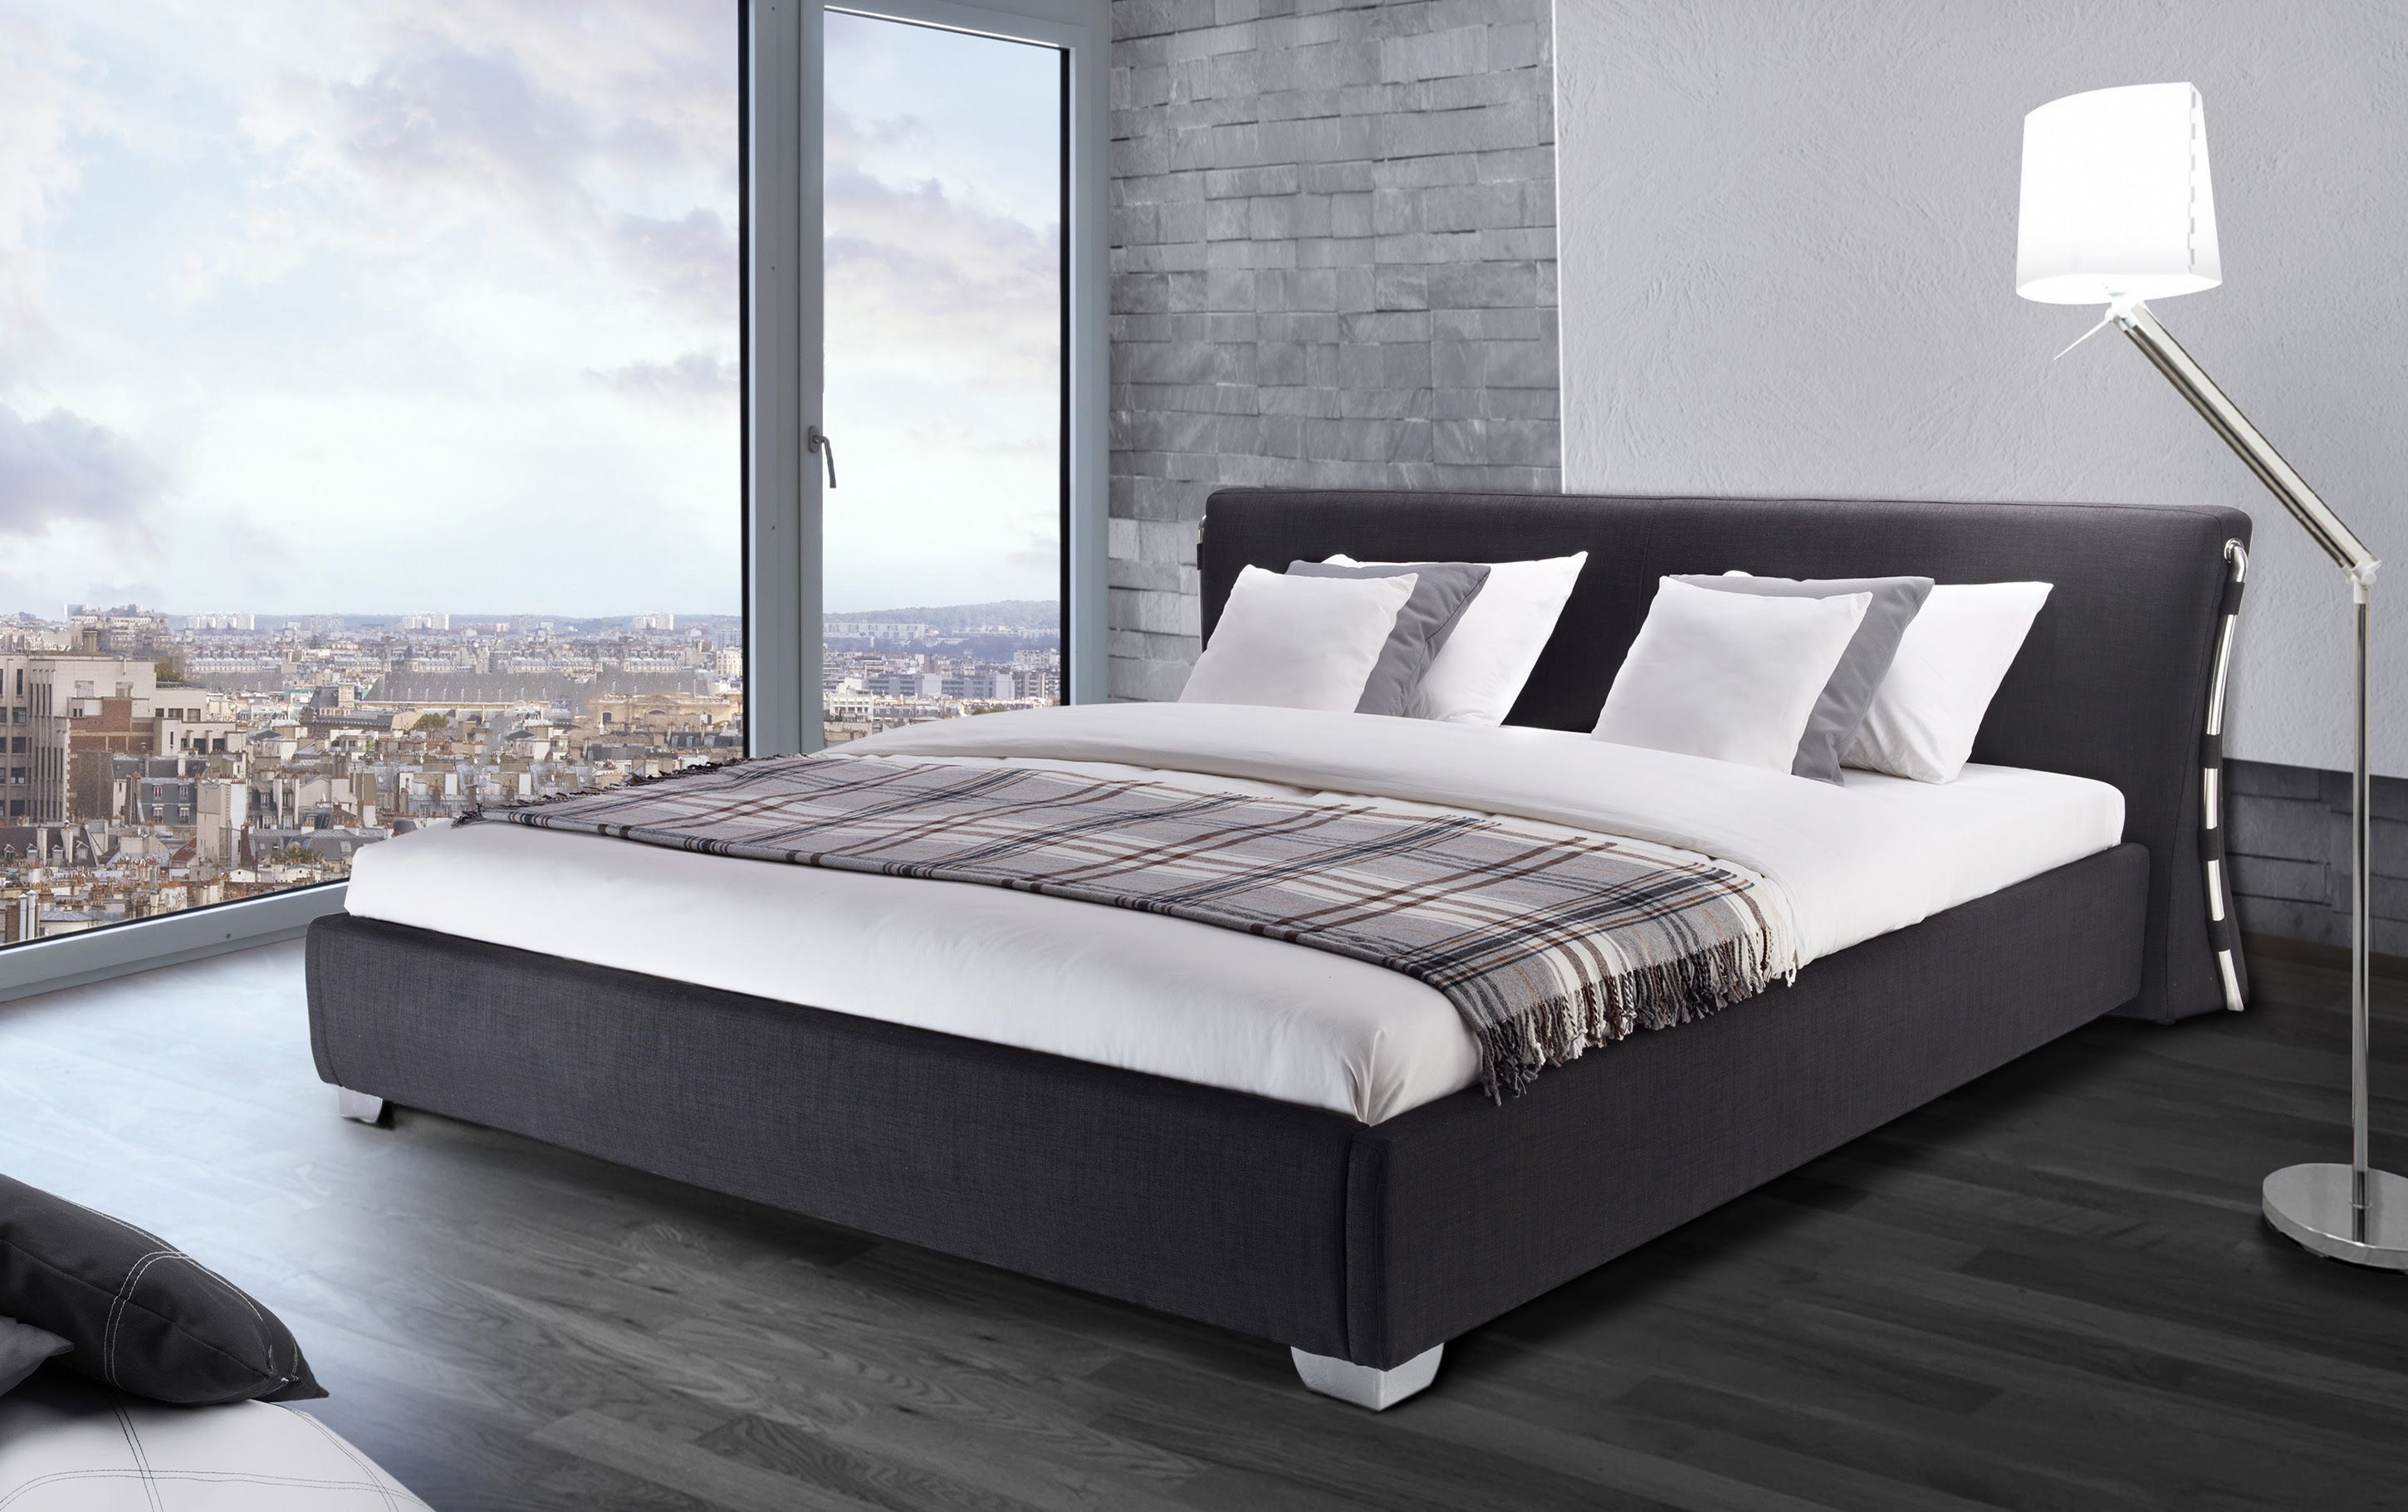 Find A King Size Bed For Your Bedroom Goodworksfurniture